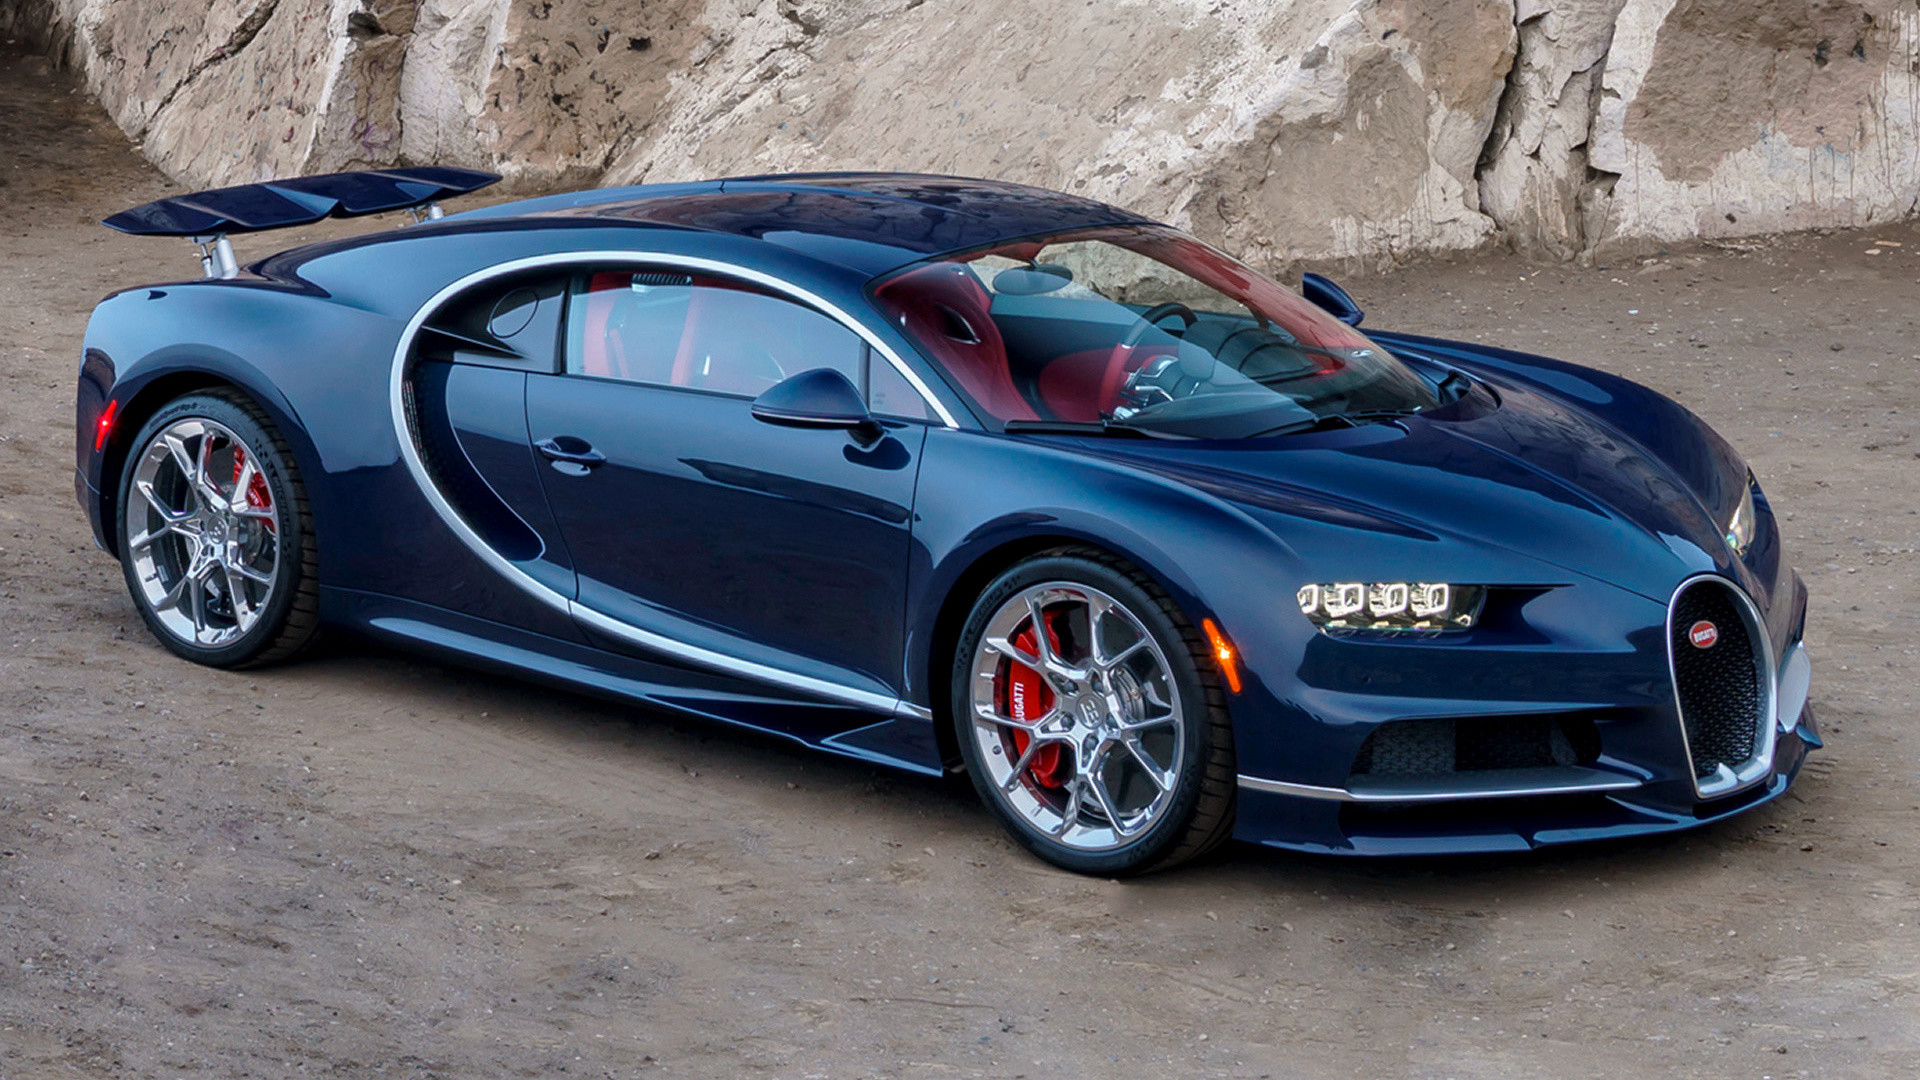 Bugatti Chiron Wallpapers 74 Images